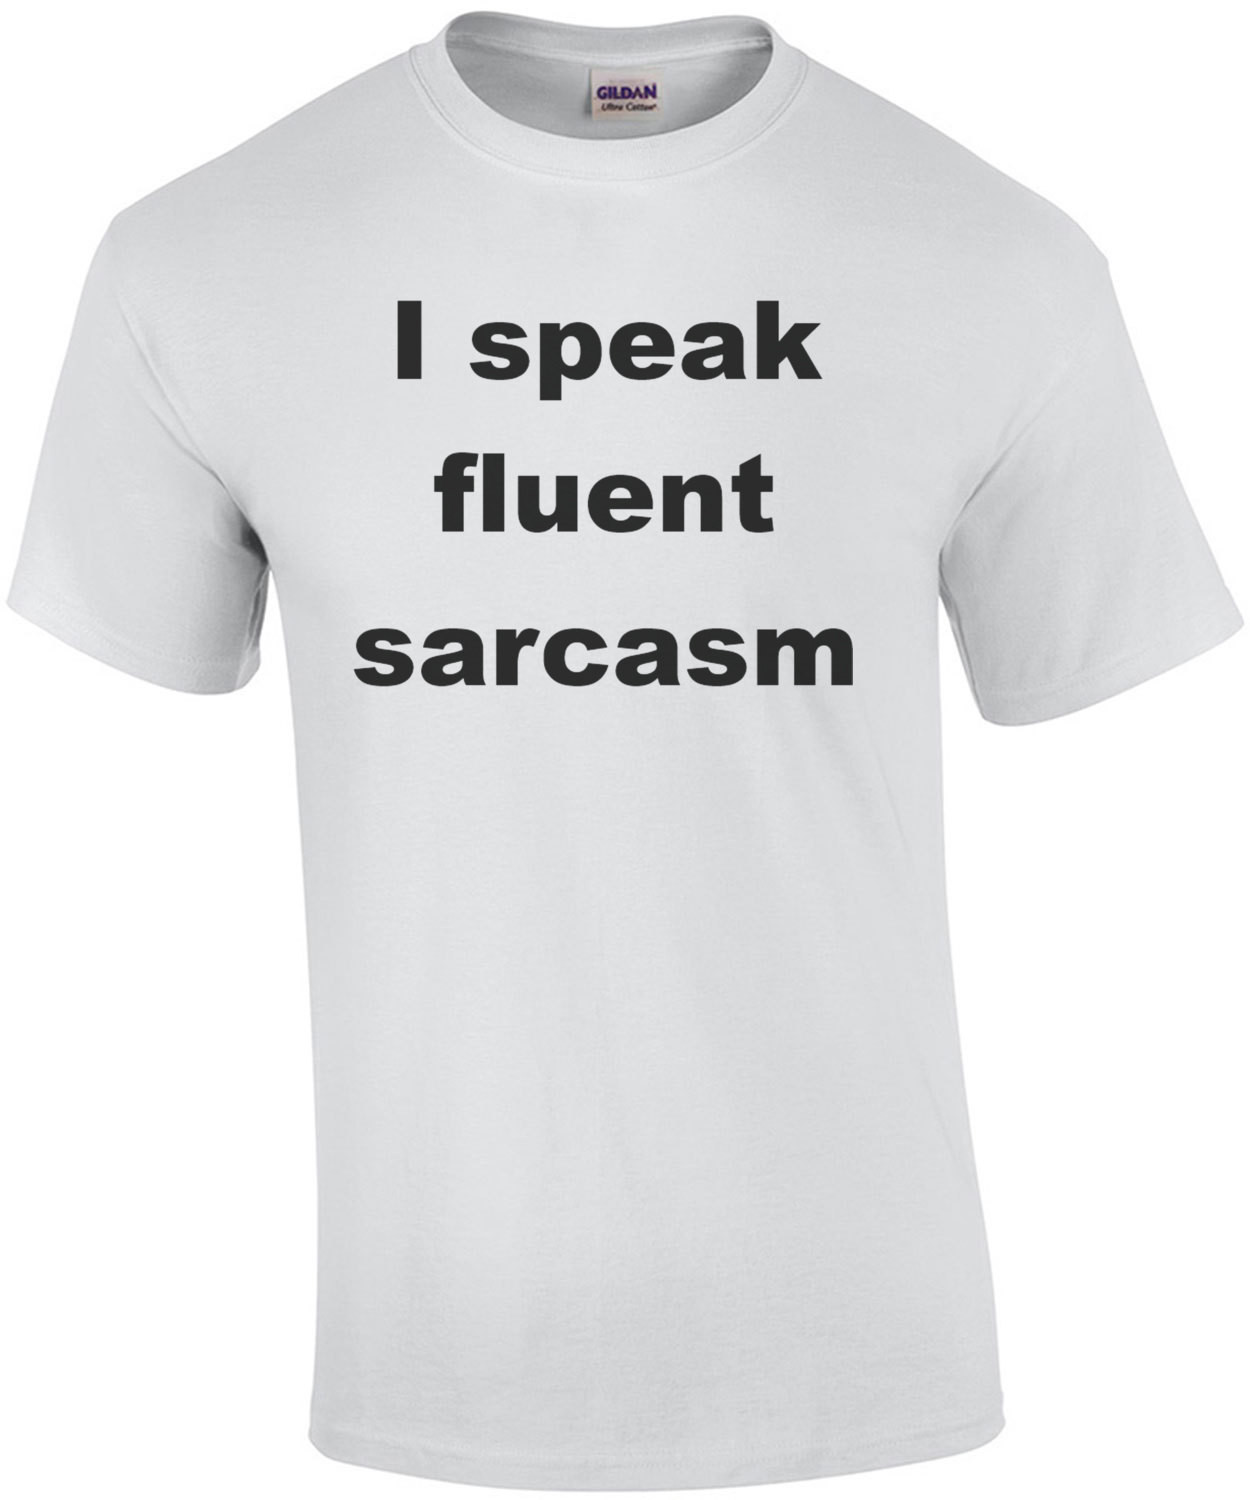 I speak fluent sarcasm. Shirt